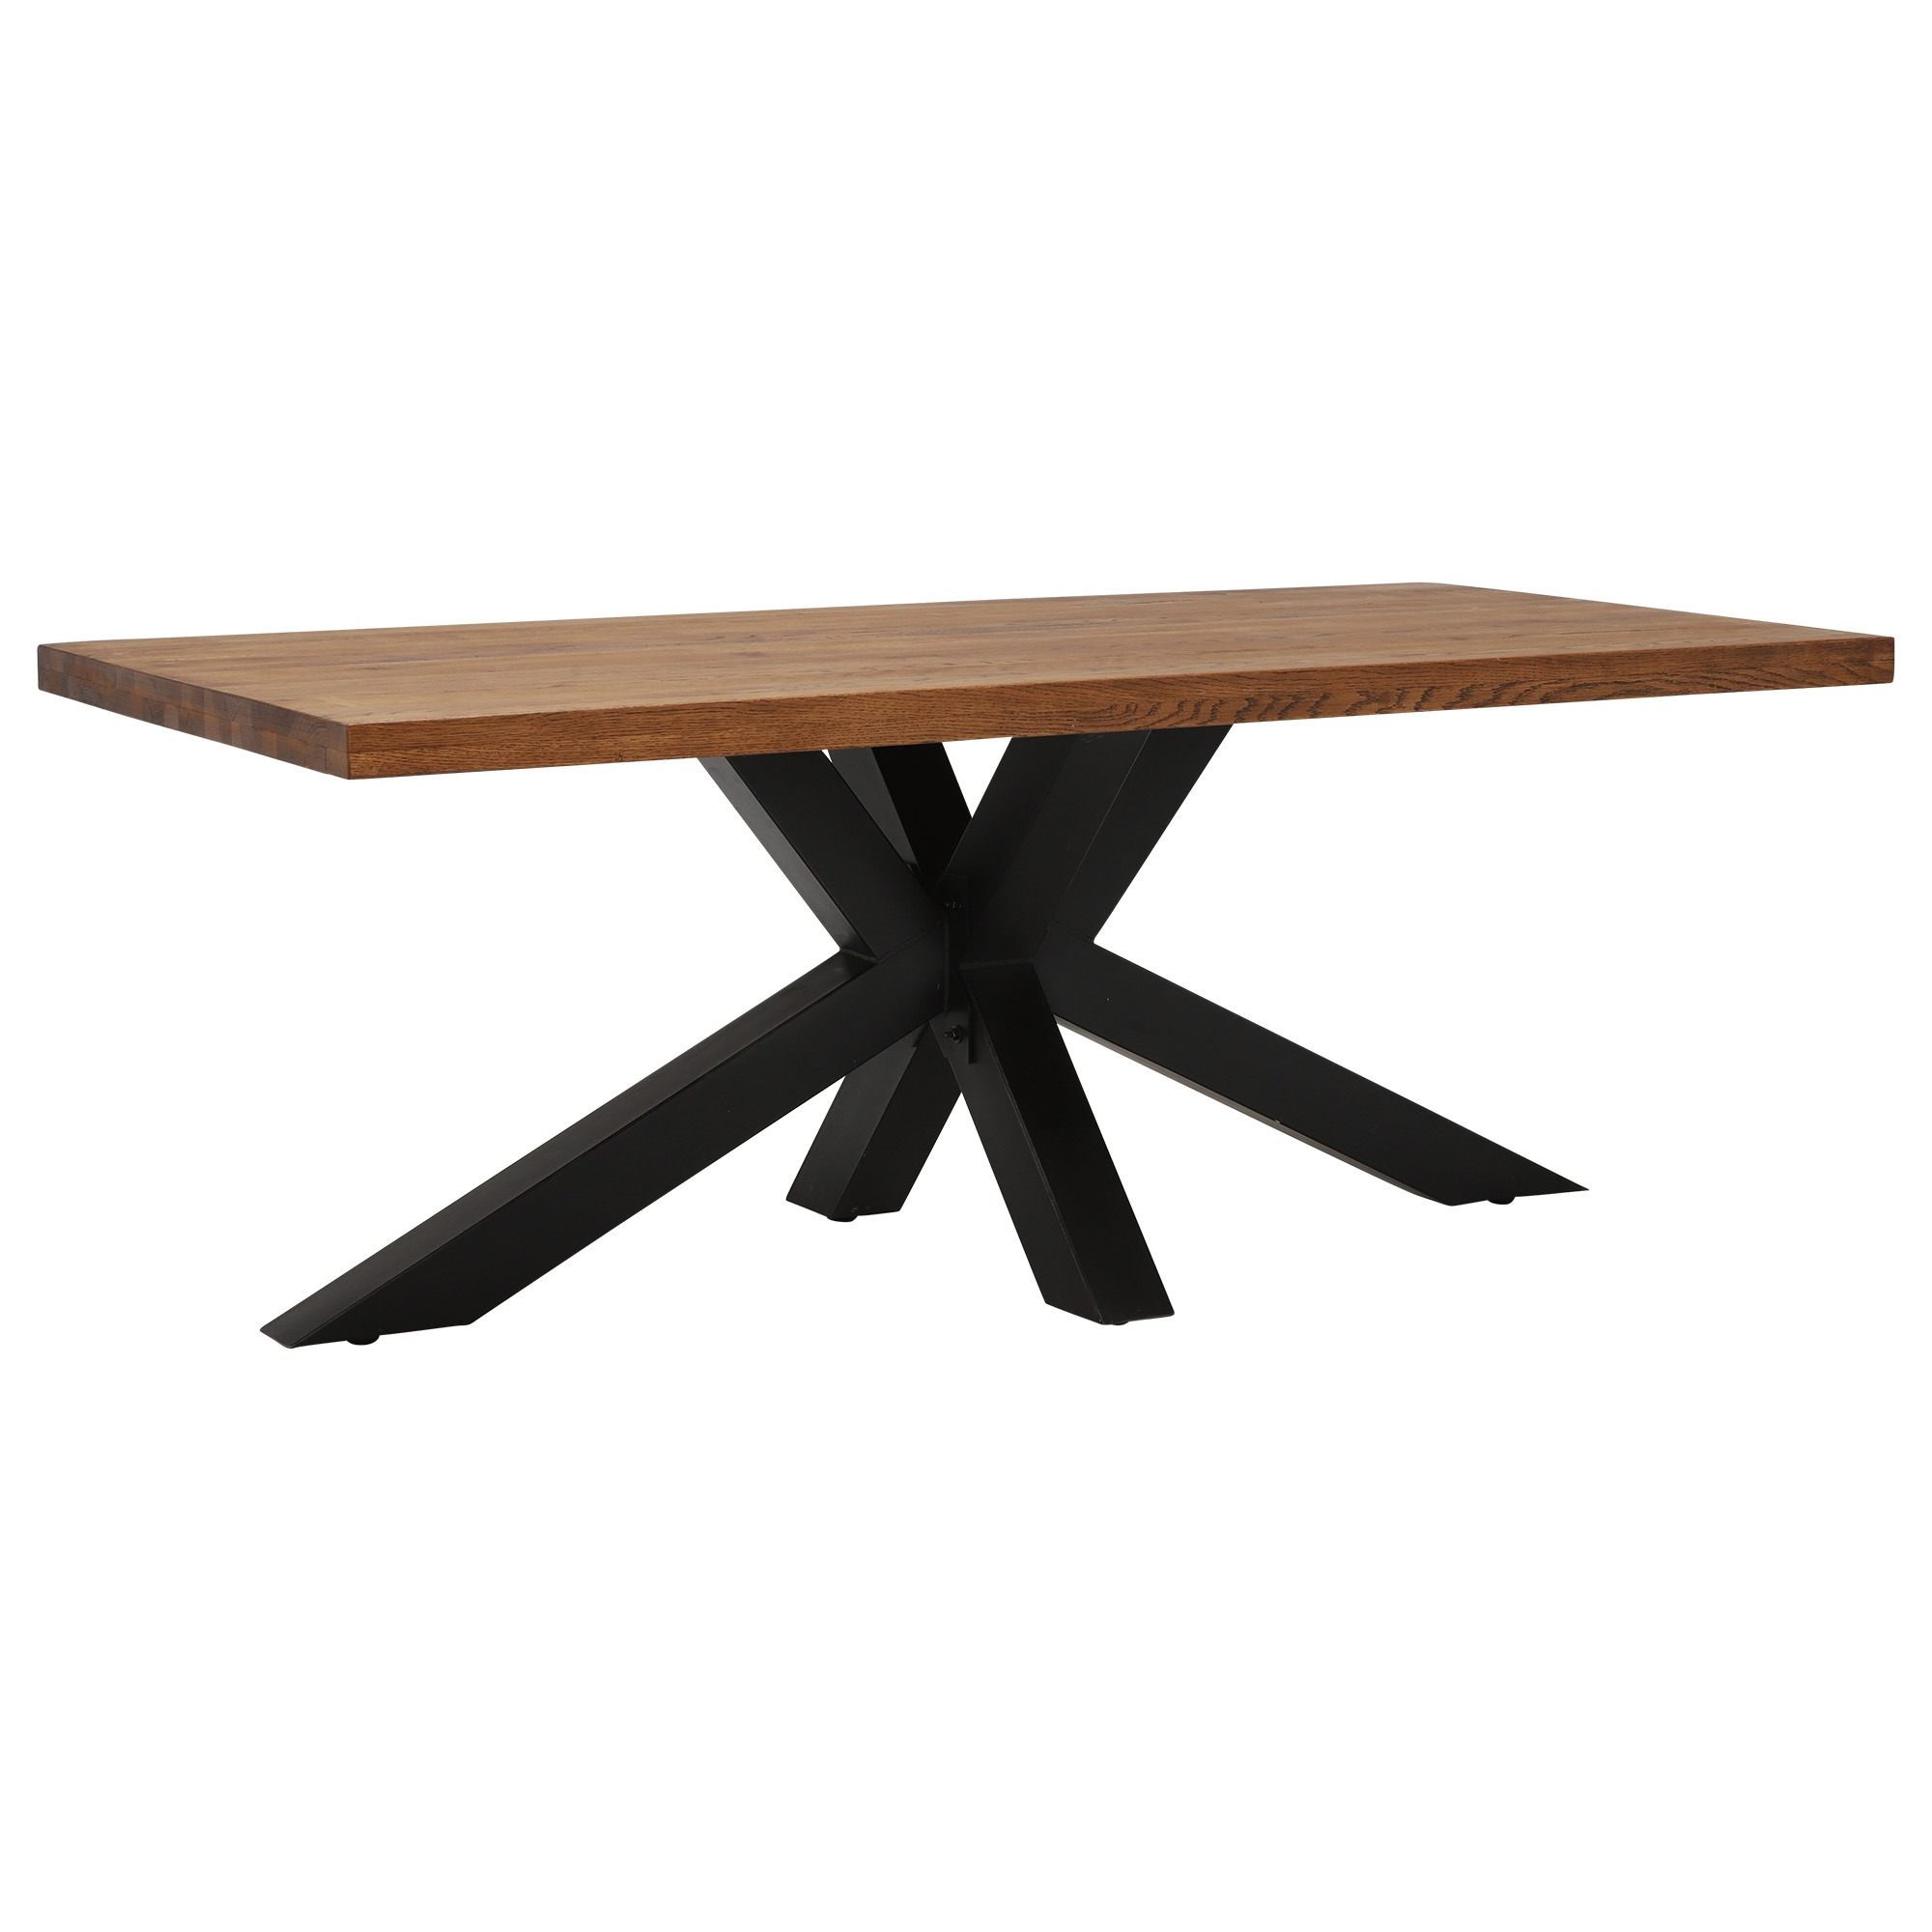 CORMAR OILED OAK LARGE DINING TABLE - L240cm x D100cm x H77cm